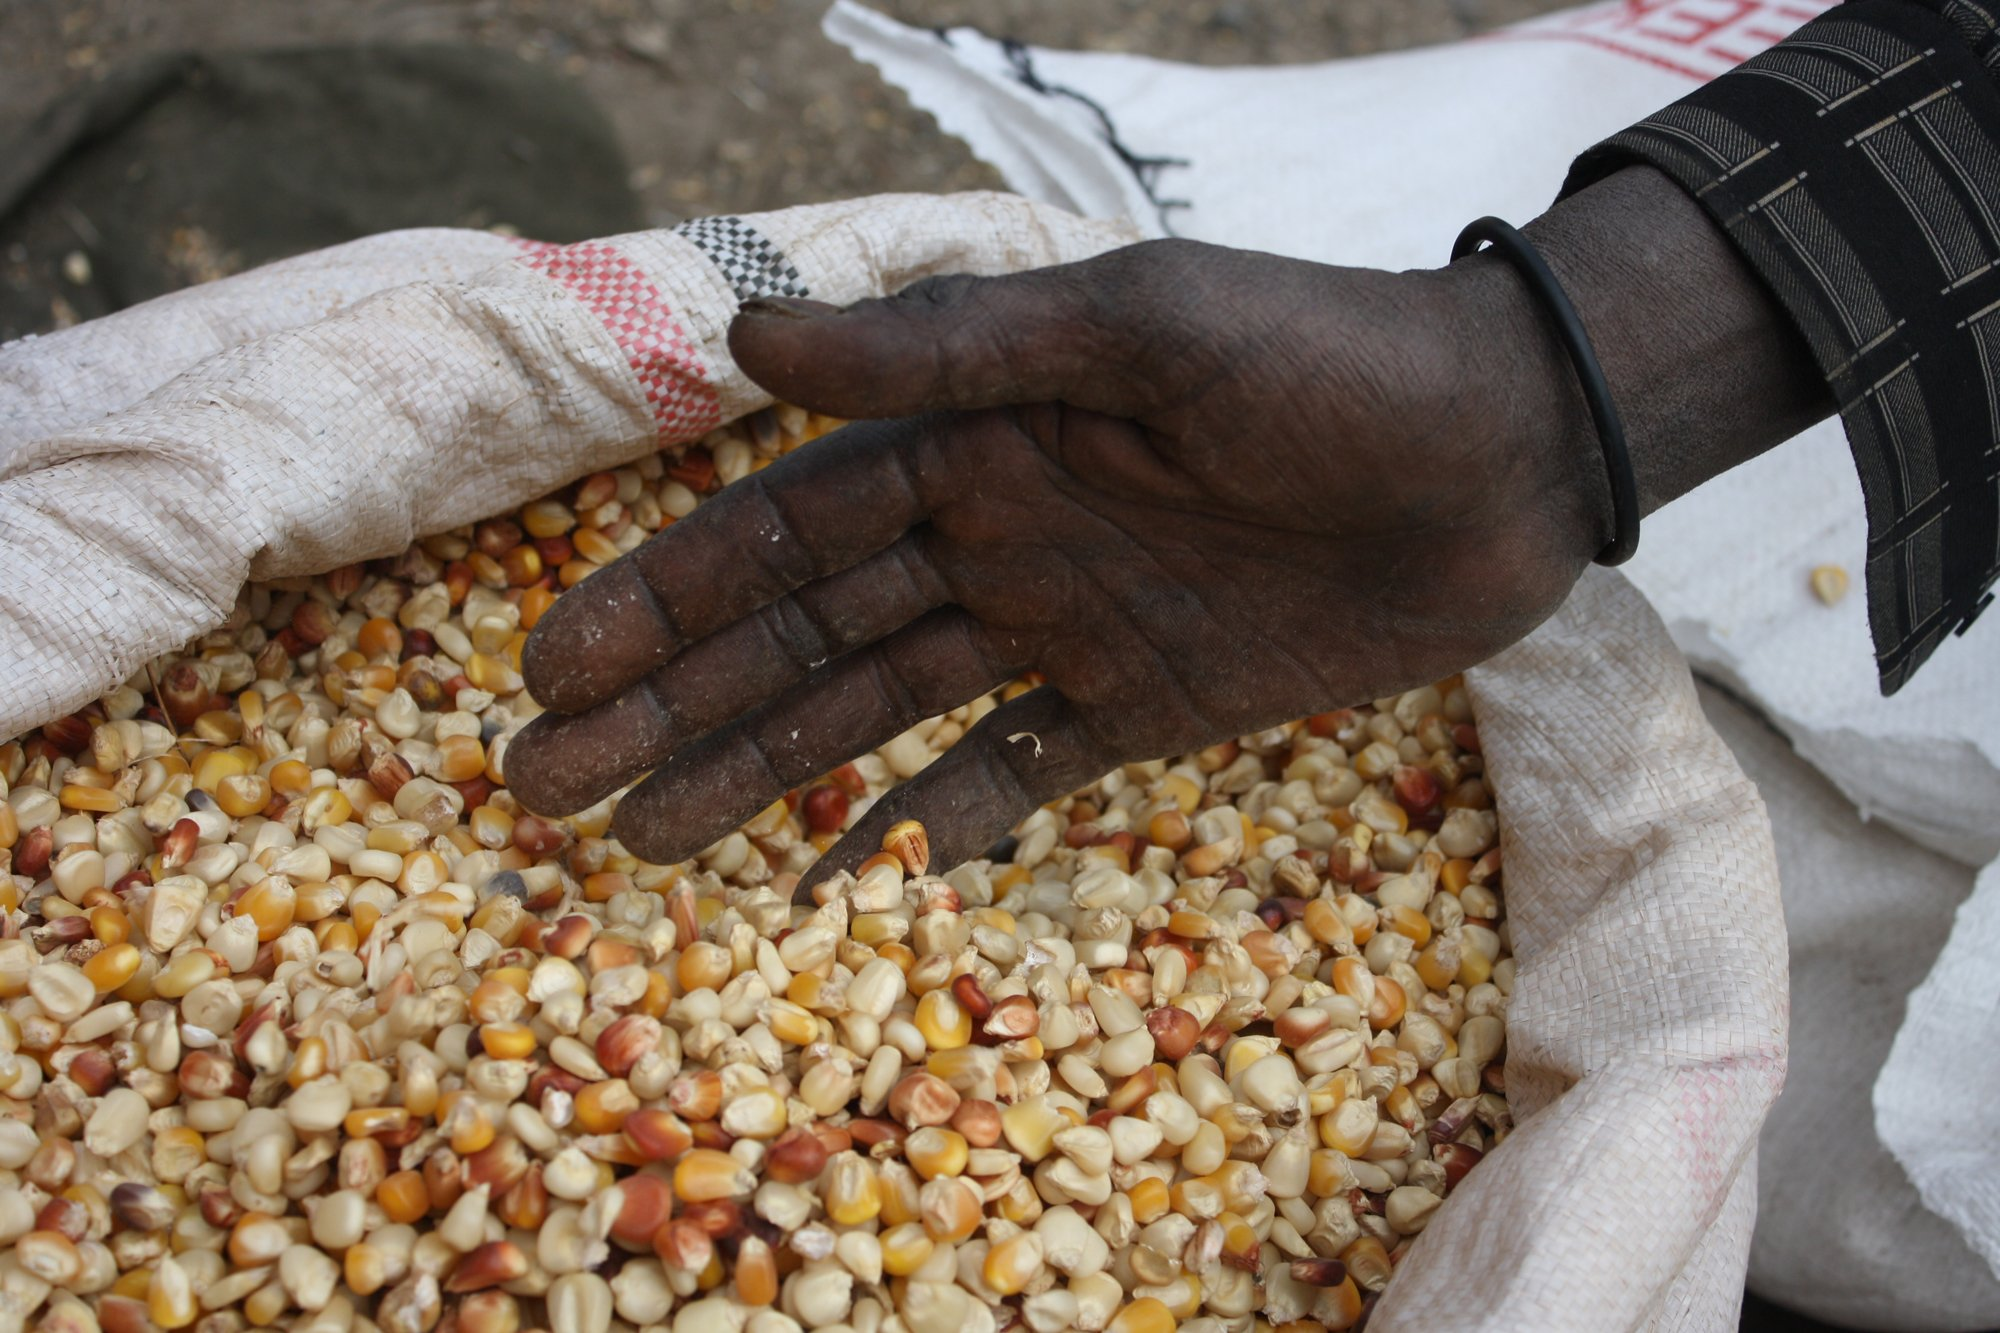 A seller runs his hand through his stock of maize at Ihil Berenda, the wholesale grain market in Addis Ababa, Ethiopia